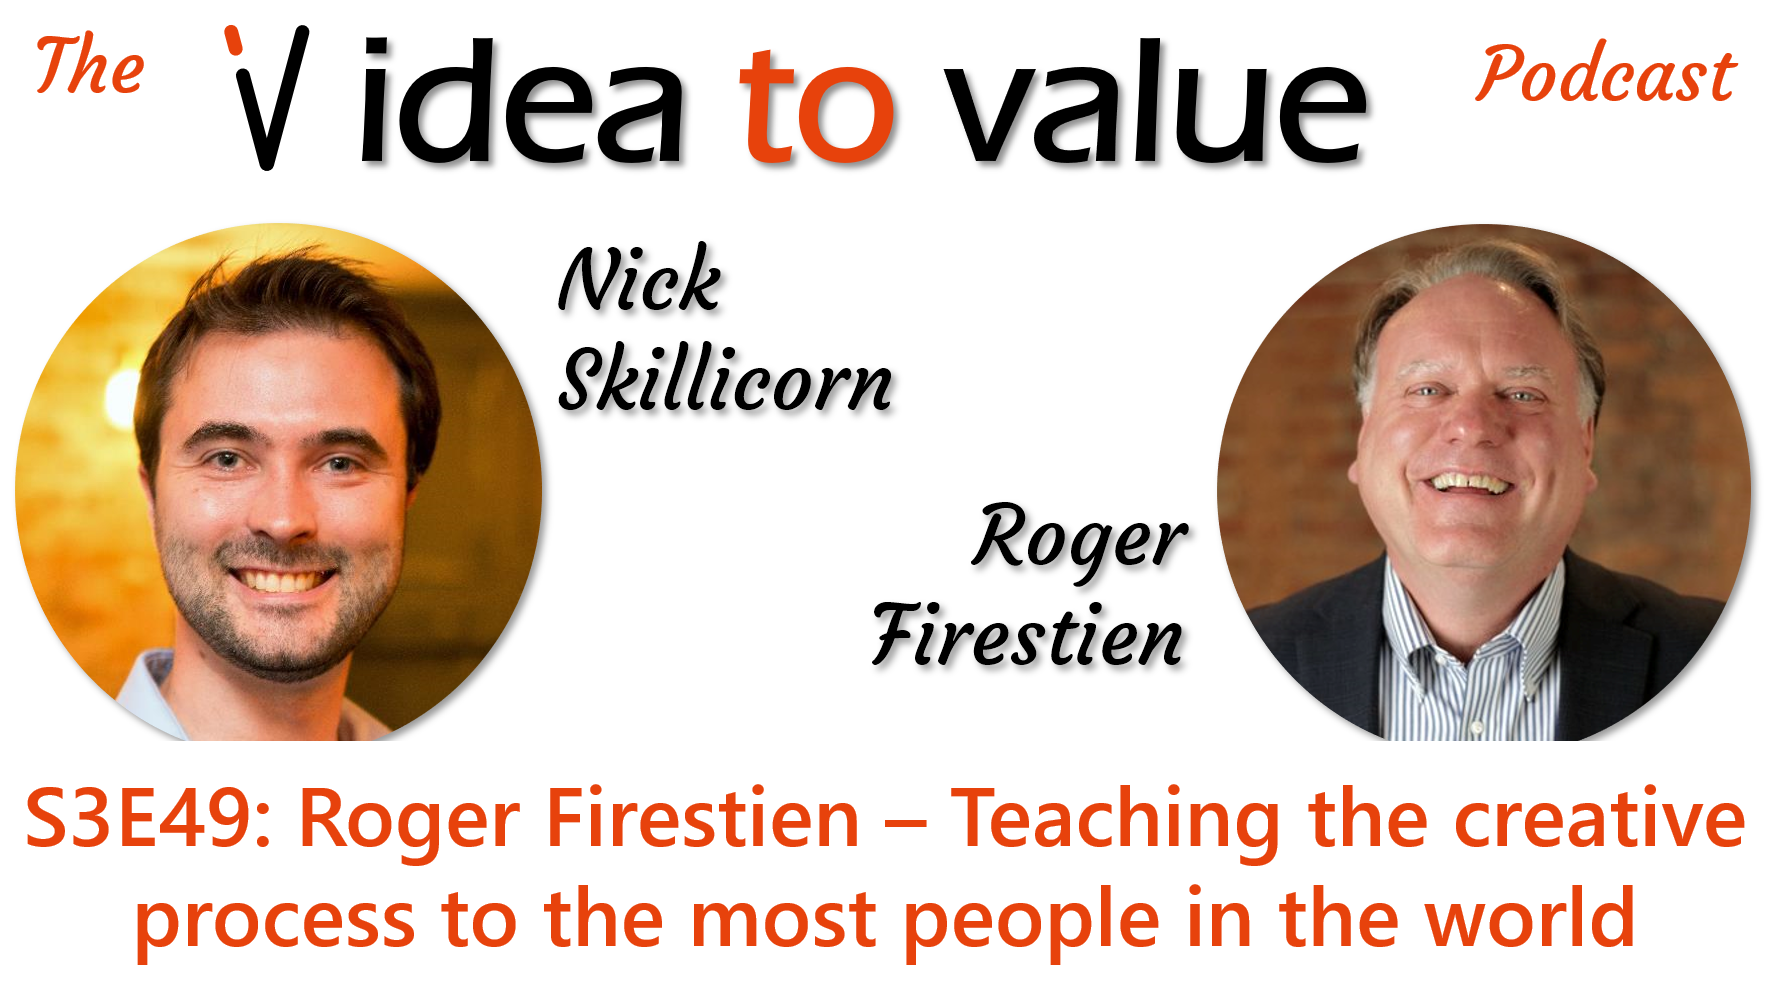 S3E29 Roger Firestien - Learning from the man who taught the creative process to the most people in the world